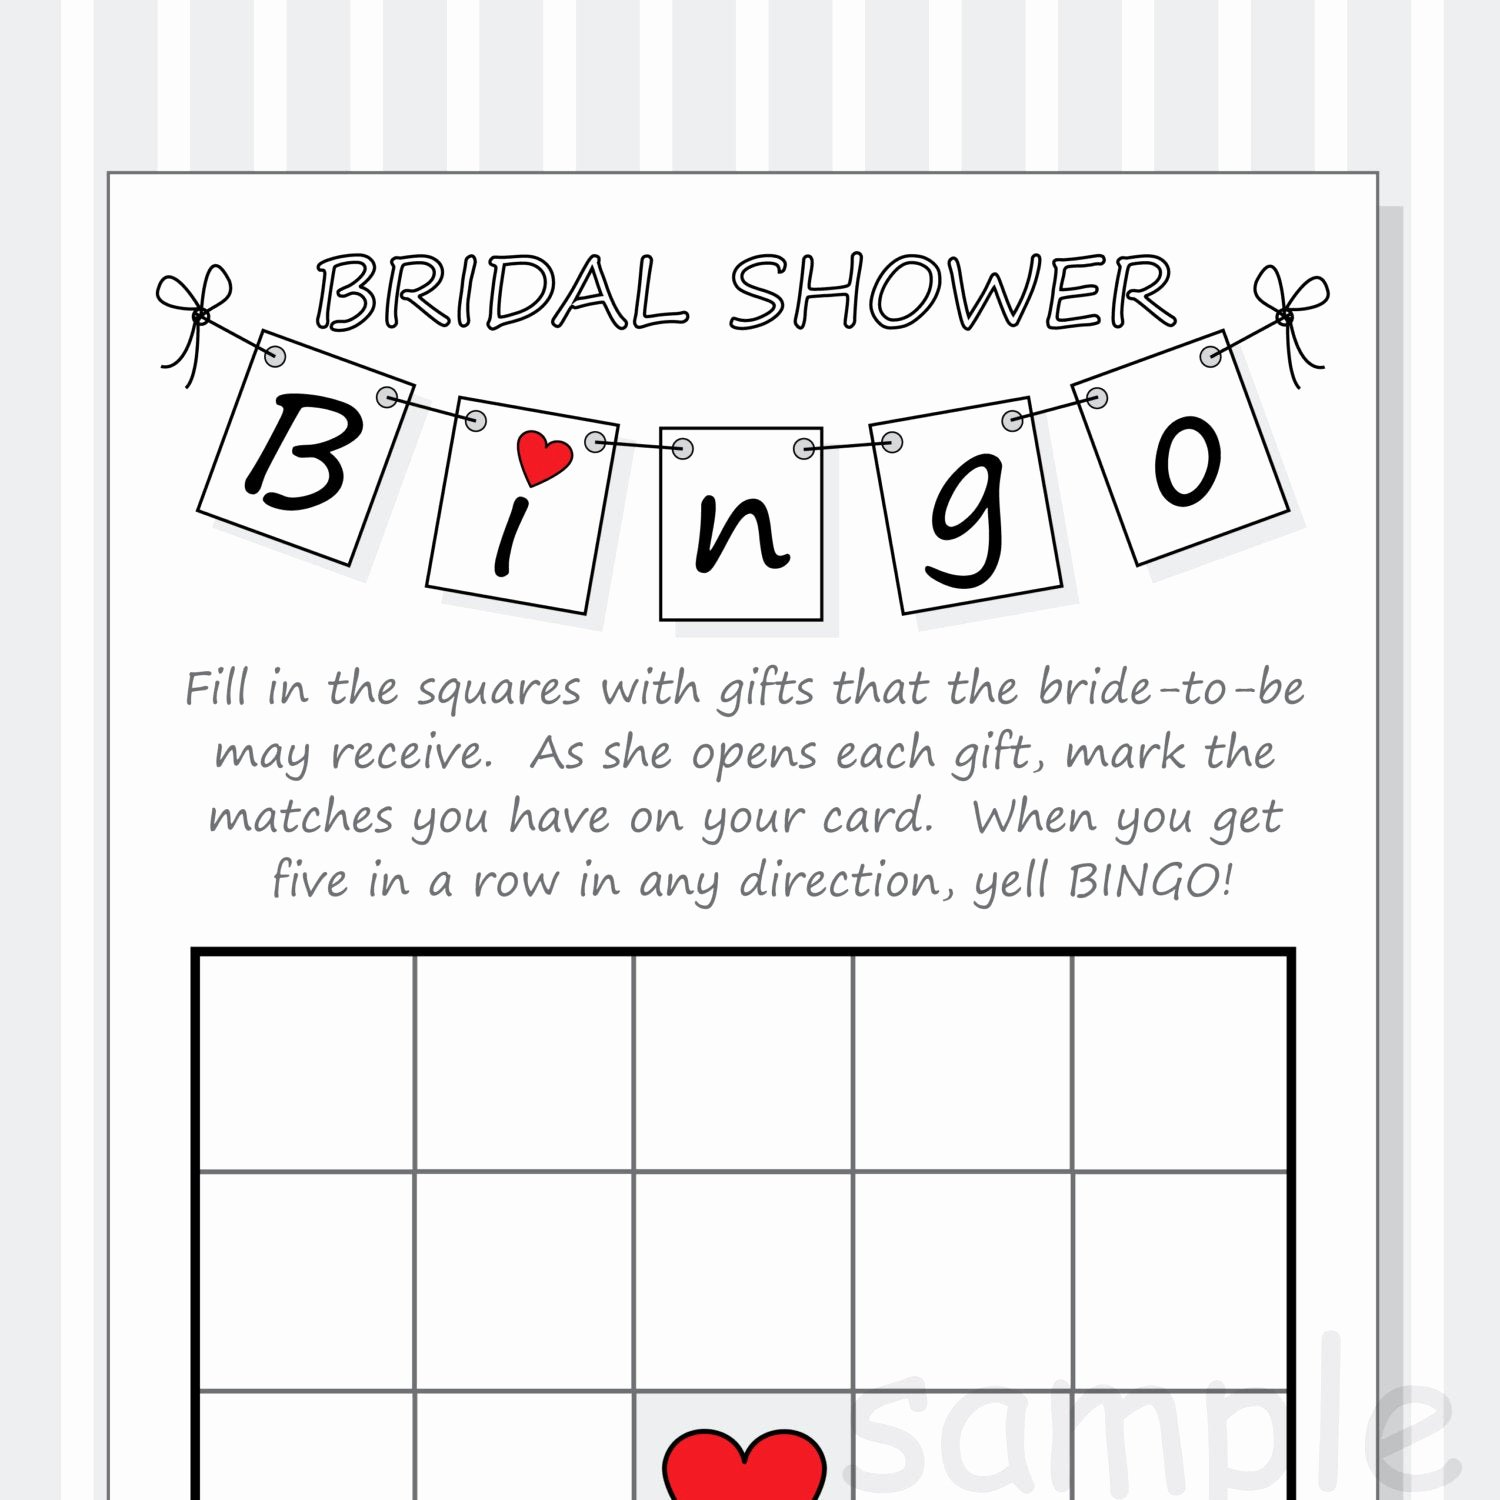 Bridal Shower Bingo Template Free Awesome Diy Bridal Shower Bingo Printable Cards Pennant Design Red